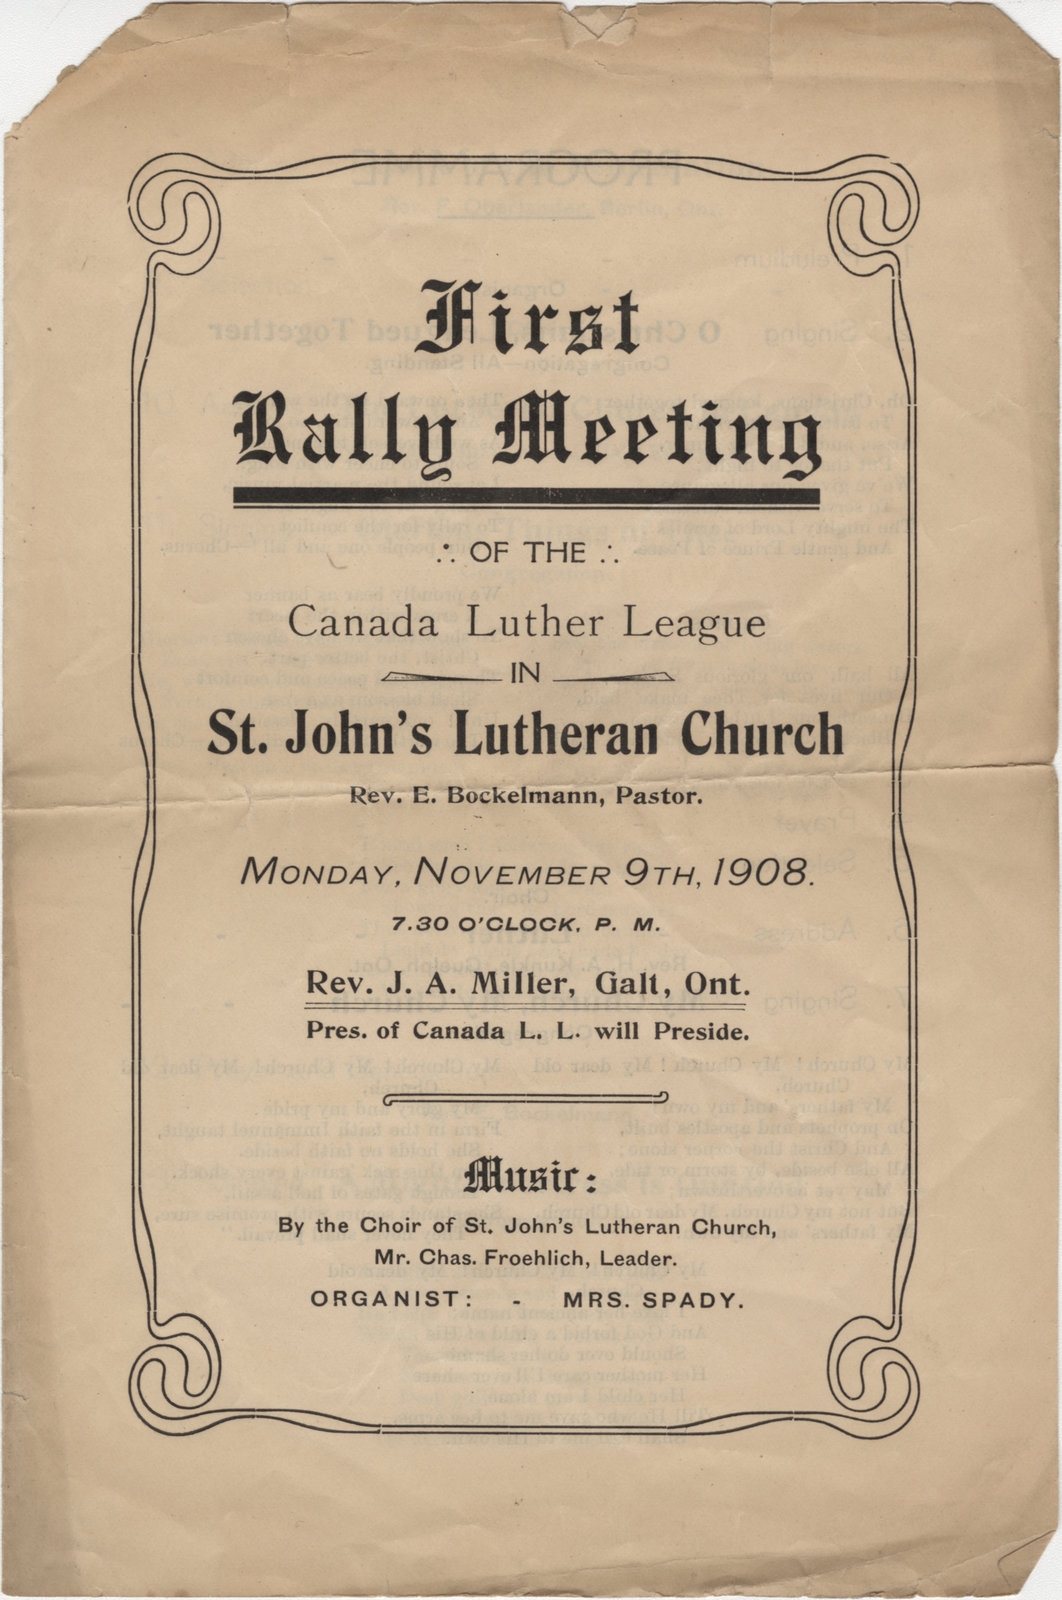 First rally meeting of the Canadian Lutheran League in St. John's Lutheran Church, 1908